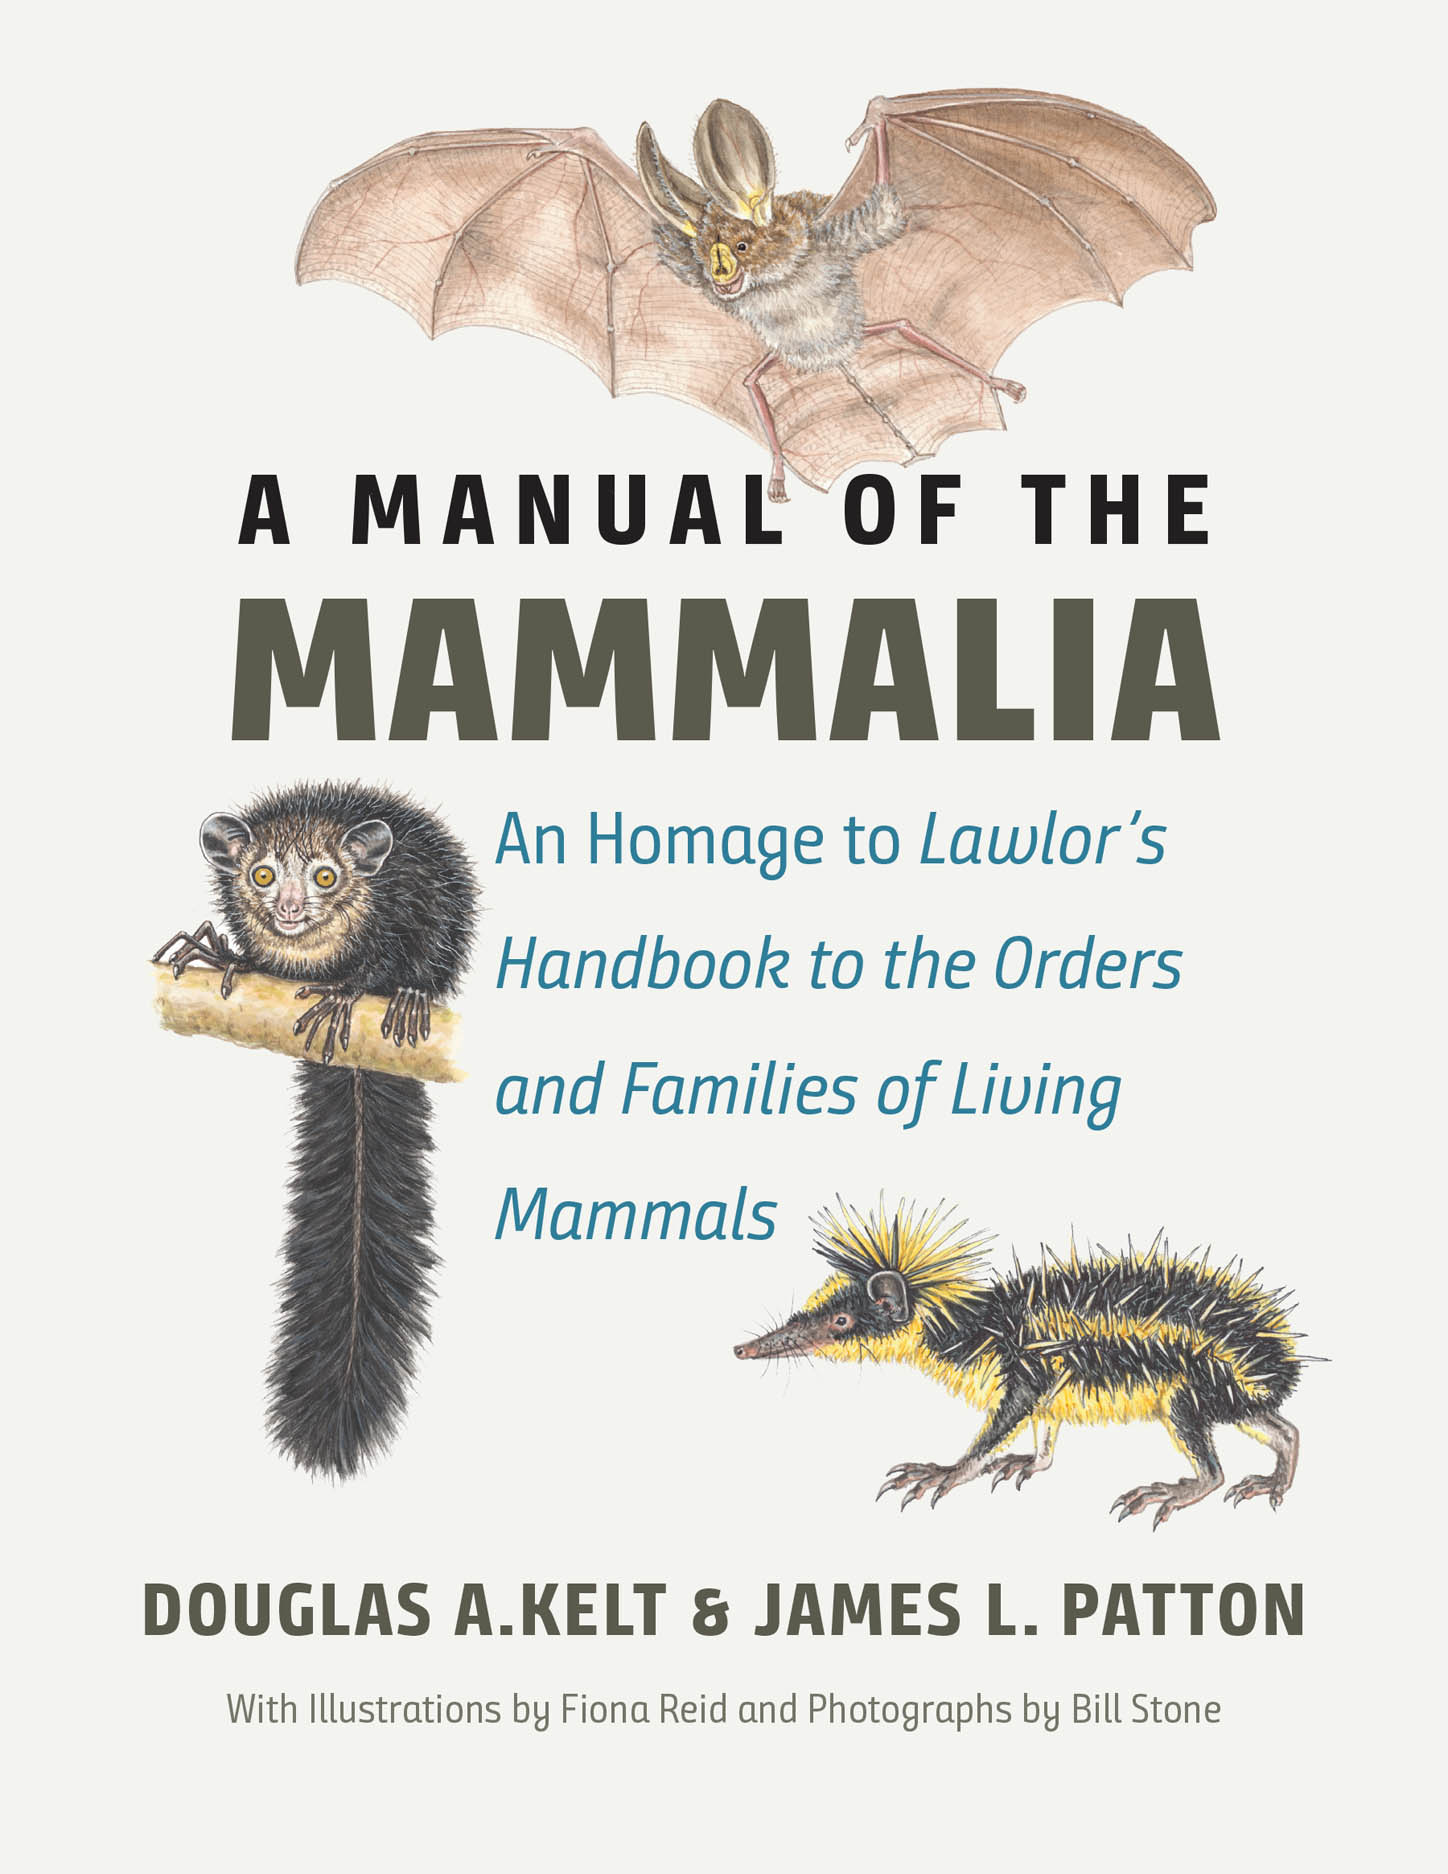 A Manual of the Mammalia